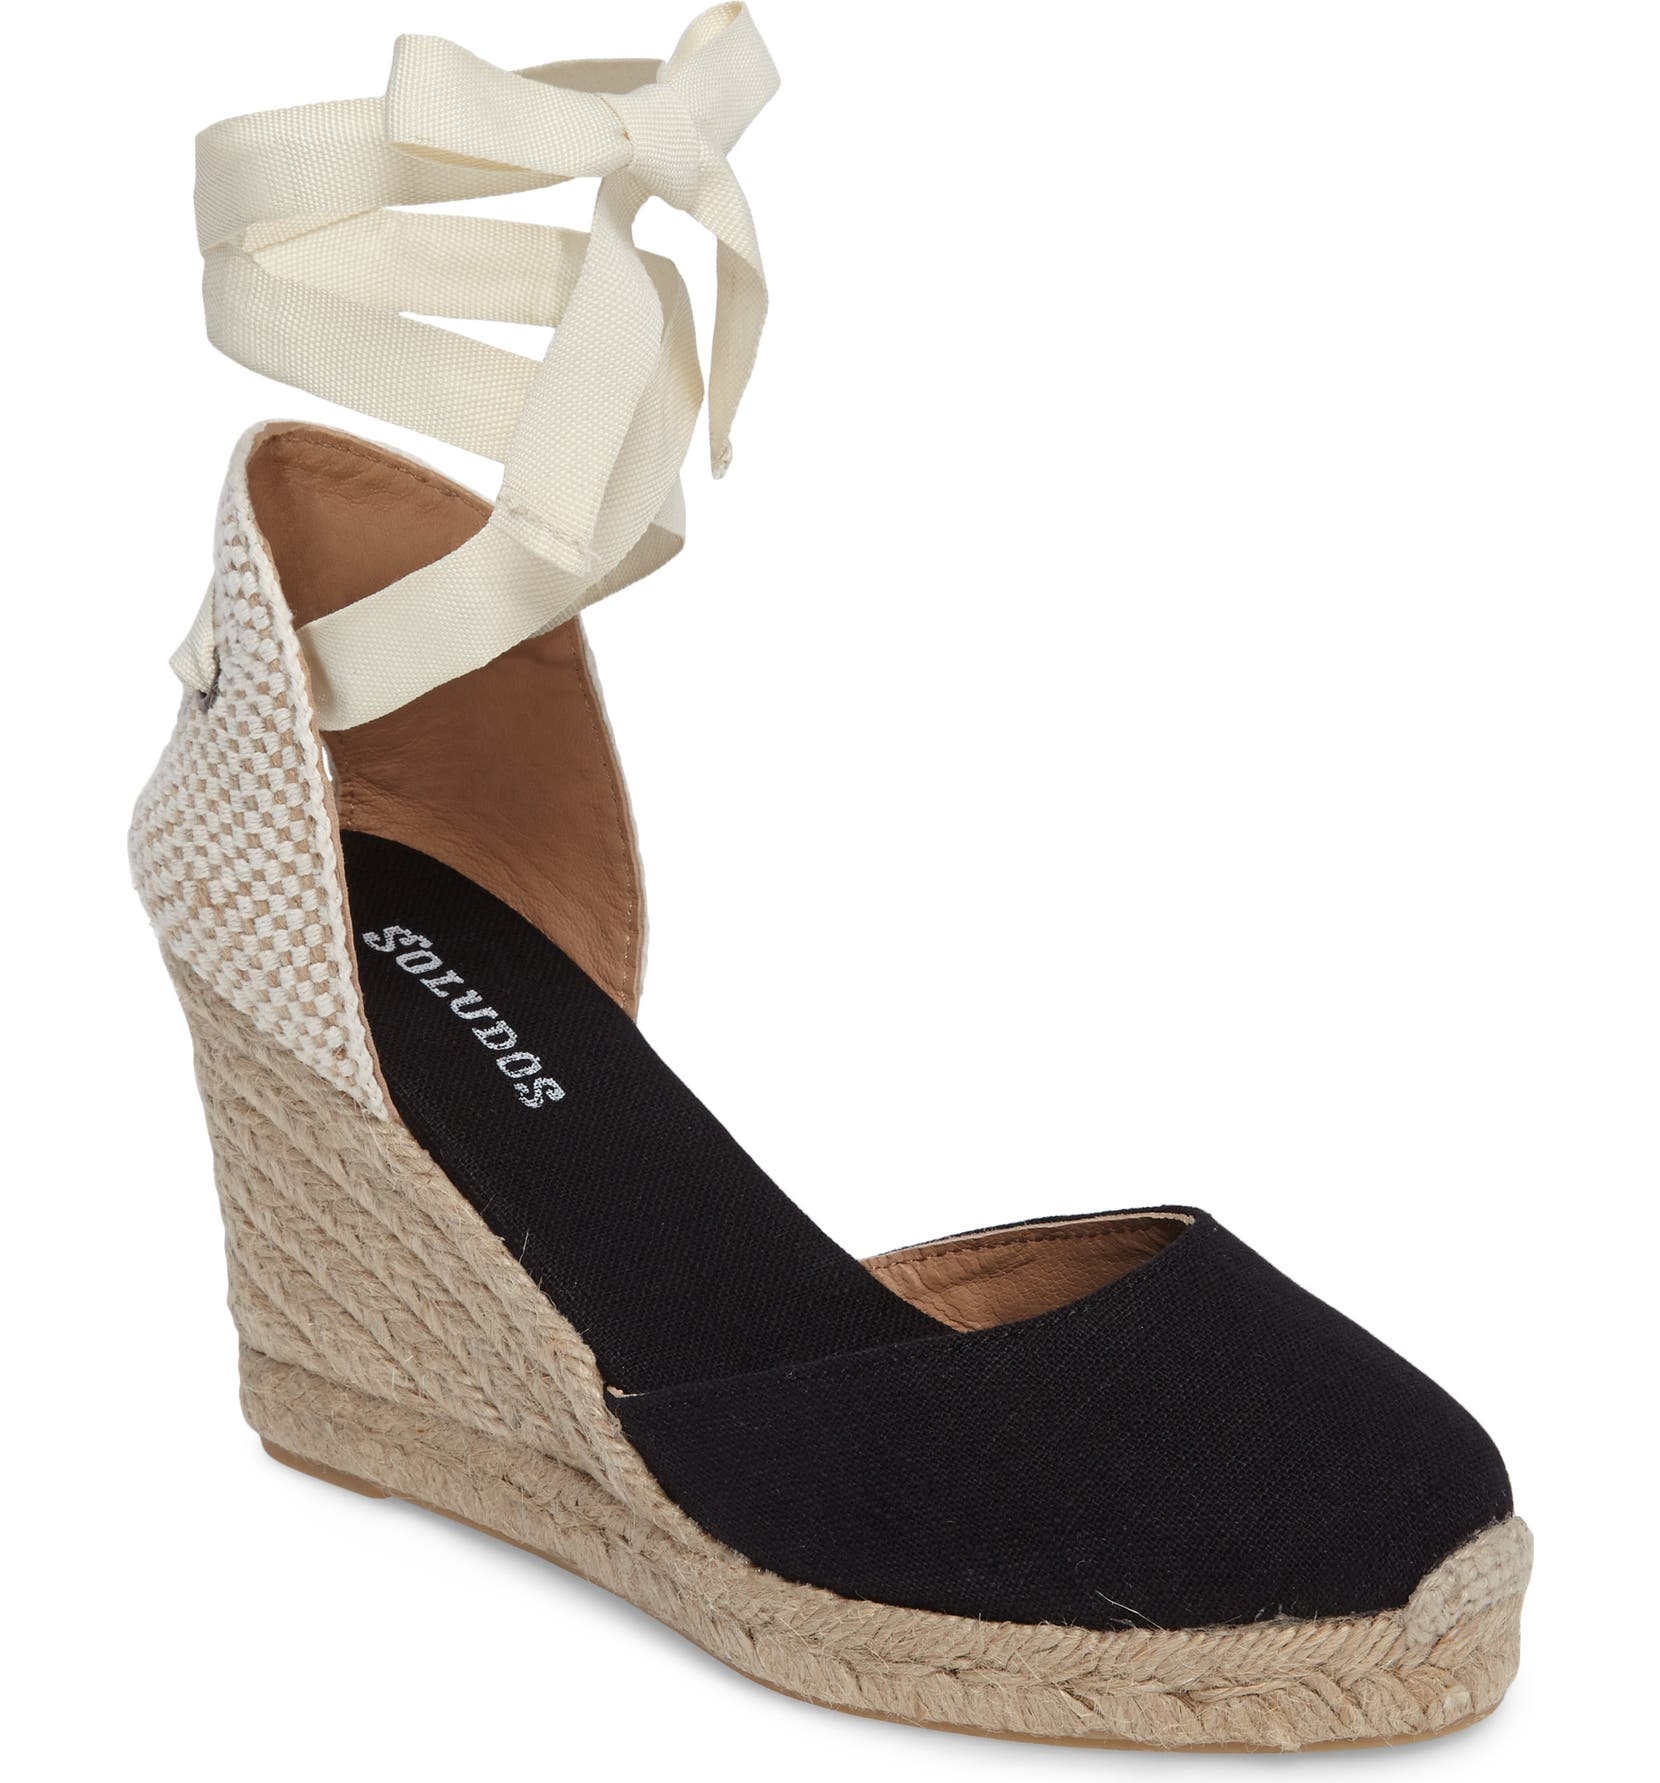 Soludos Wedge Wedge Soludos Lace Up Espadrille Sandale (Damens)   Nordstrom d399a7